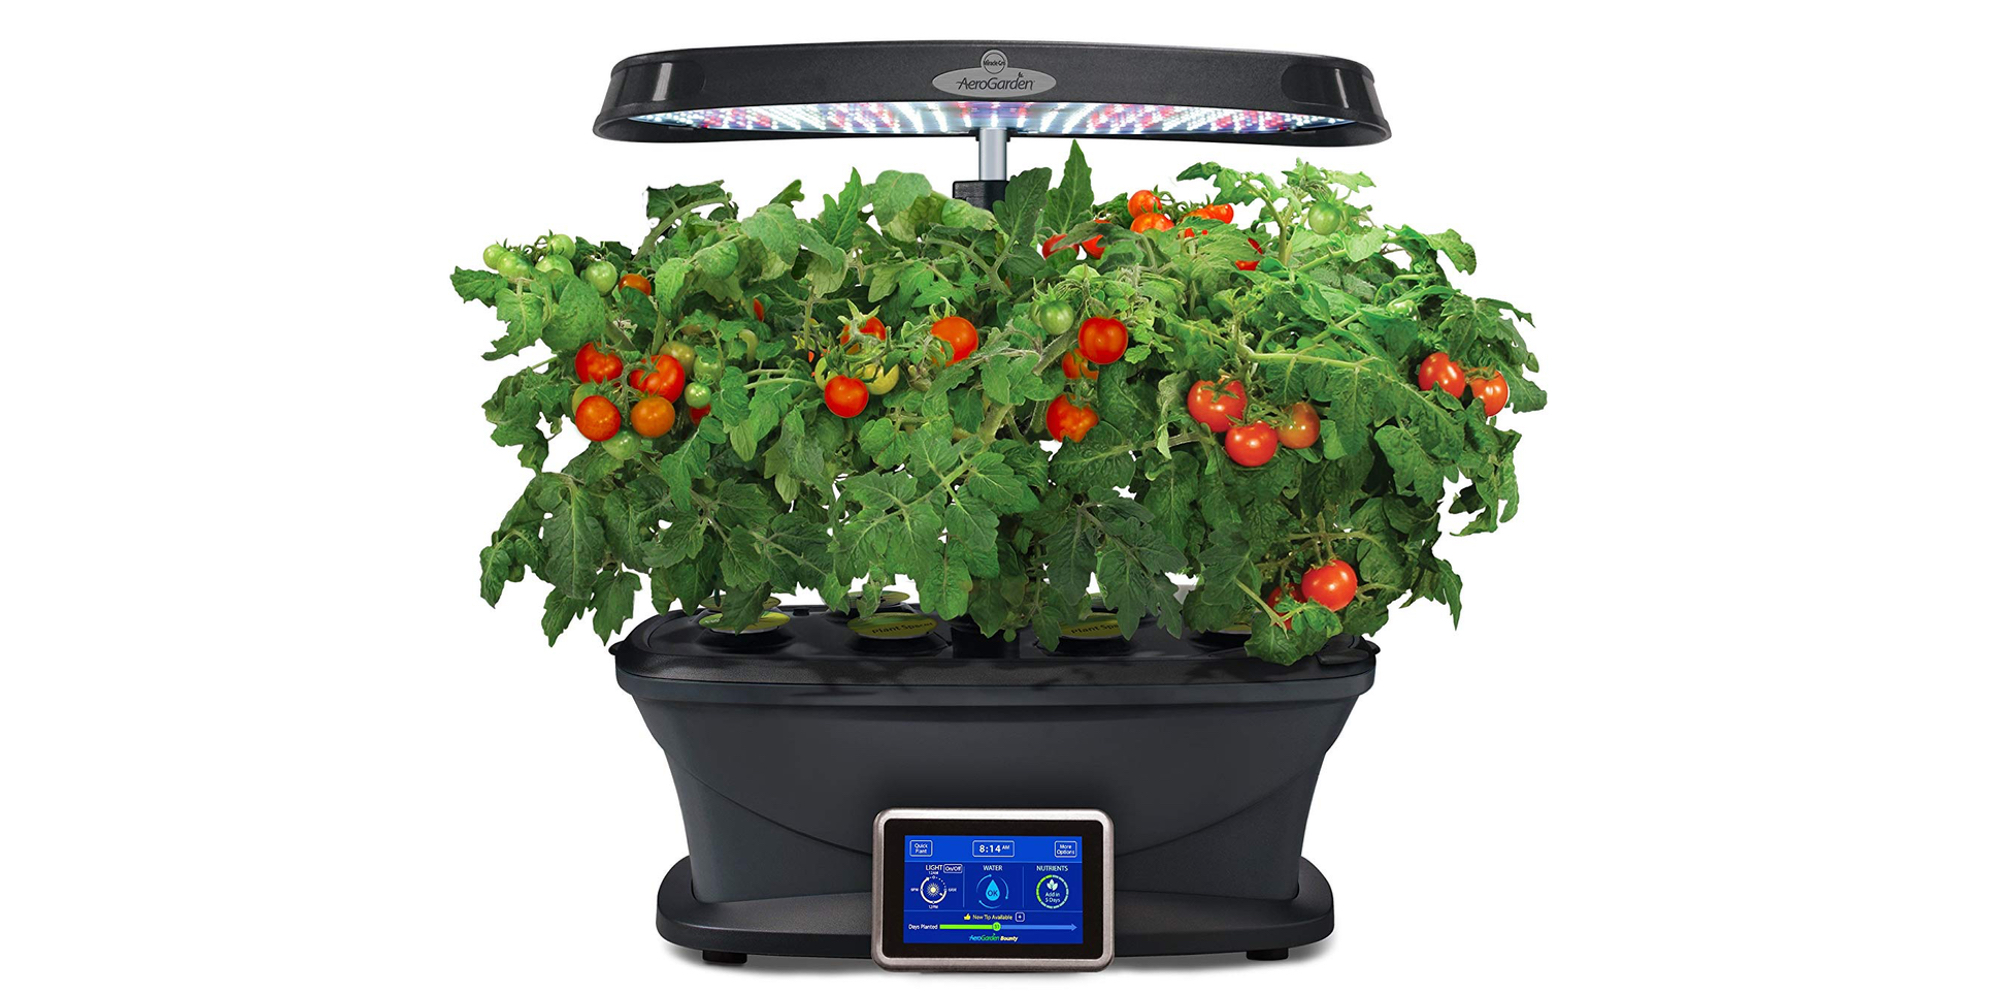 Grow basil, tomatoes and more with AeroGarden's Bounty App-enabled Planter: $200 (All-time low)